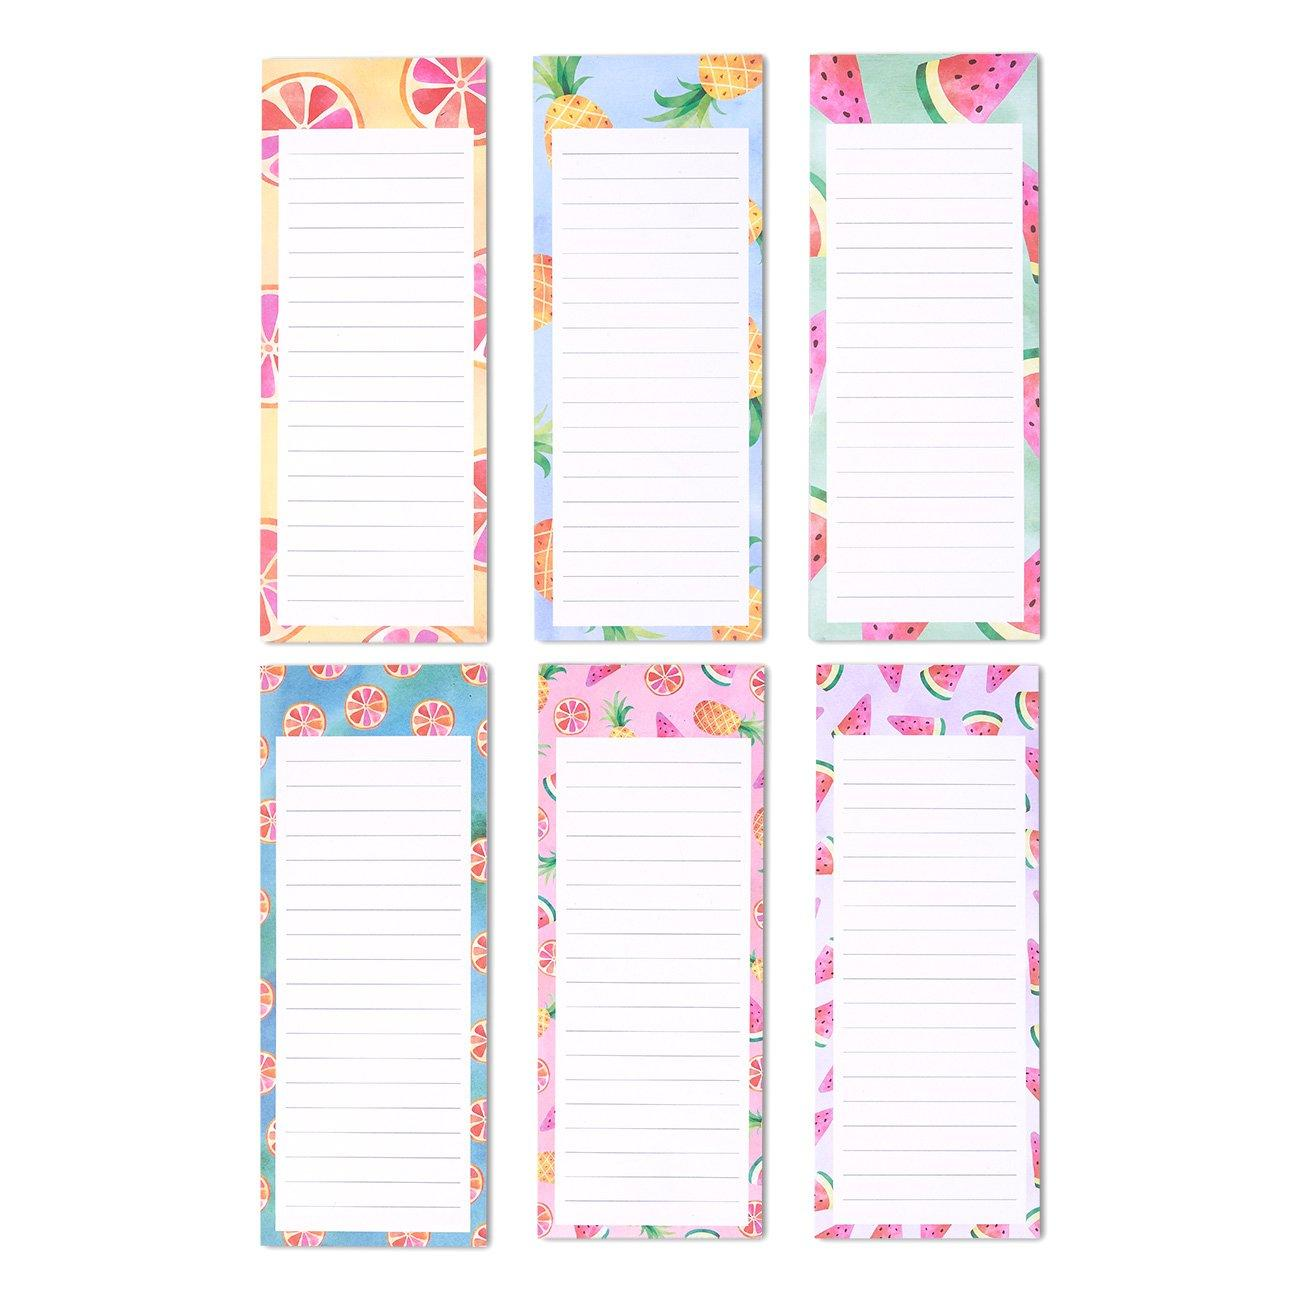 Details about Juvale to-do-List Notepad - 6-Pack Magnetic Notepads, Grocery  List Magnet Memo